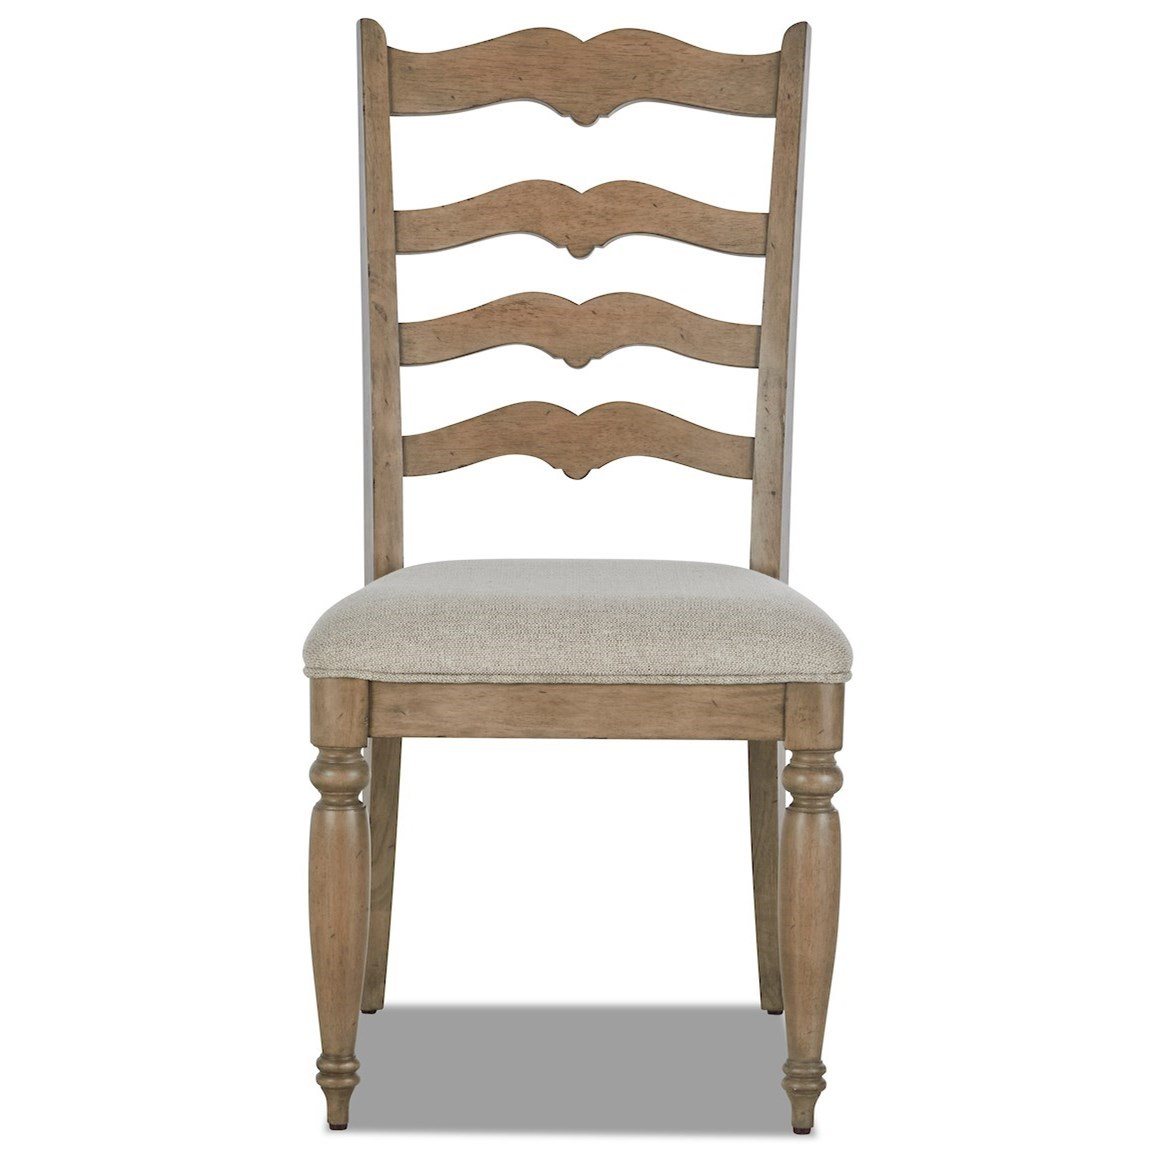 Nashville Concord Ladderback Side Chair by Trisha Yearwood Home Collection by Klaussner at Johnny Janosik